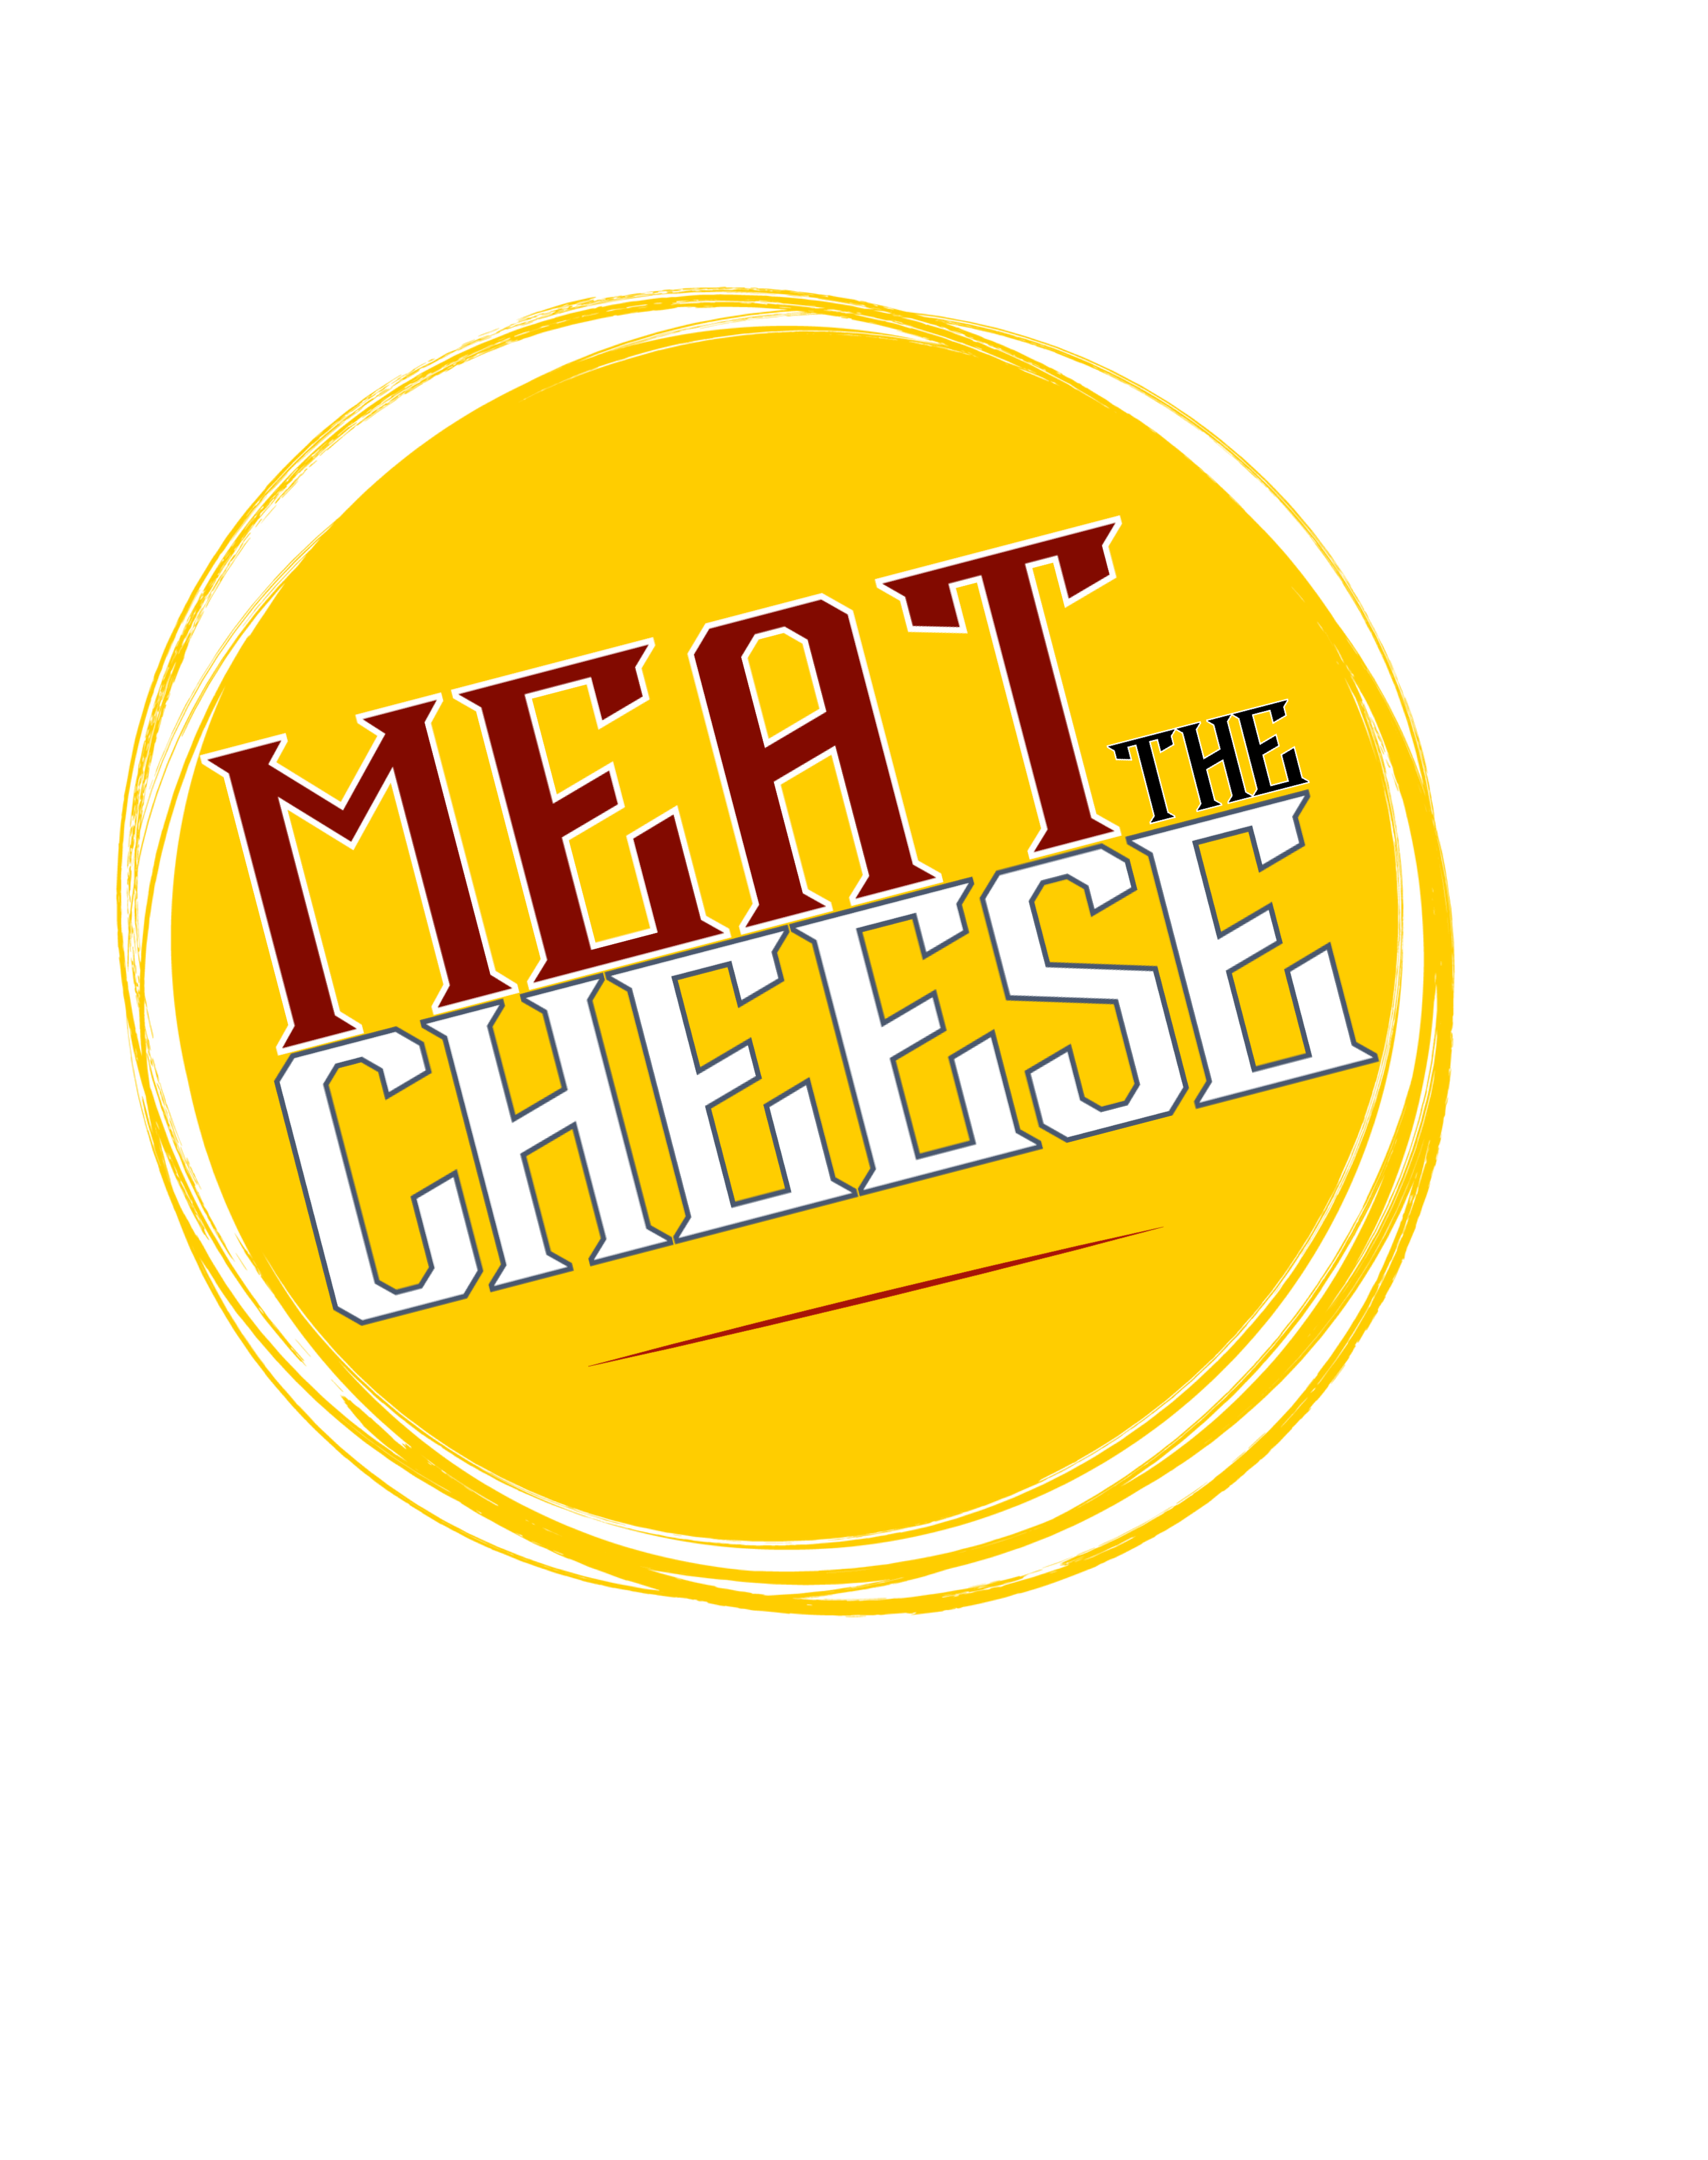 Meat The Cheese